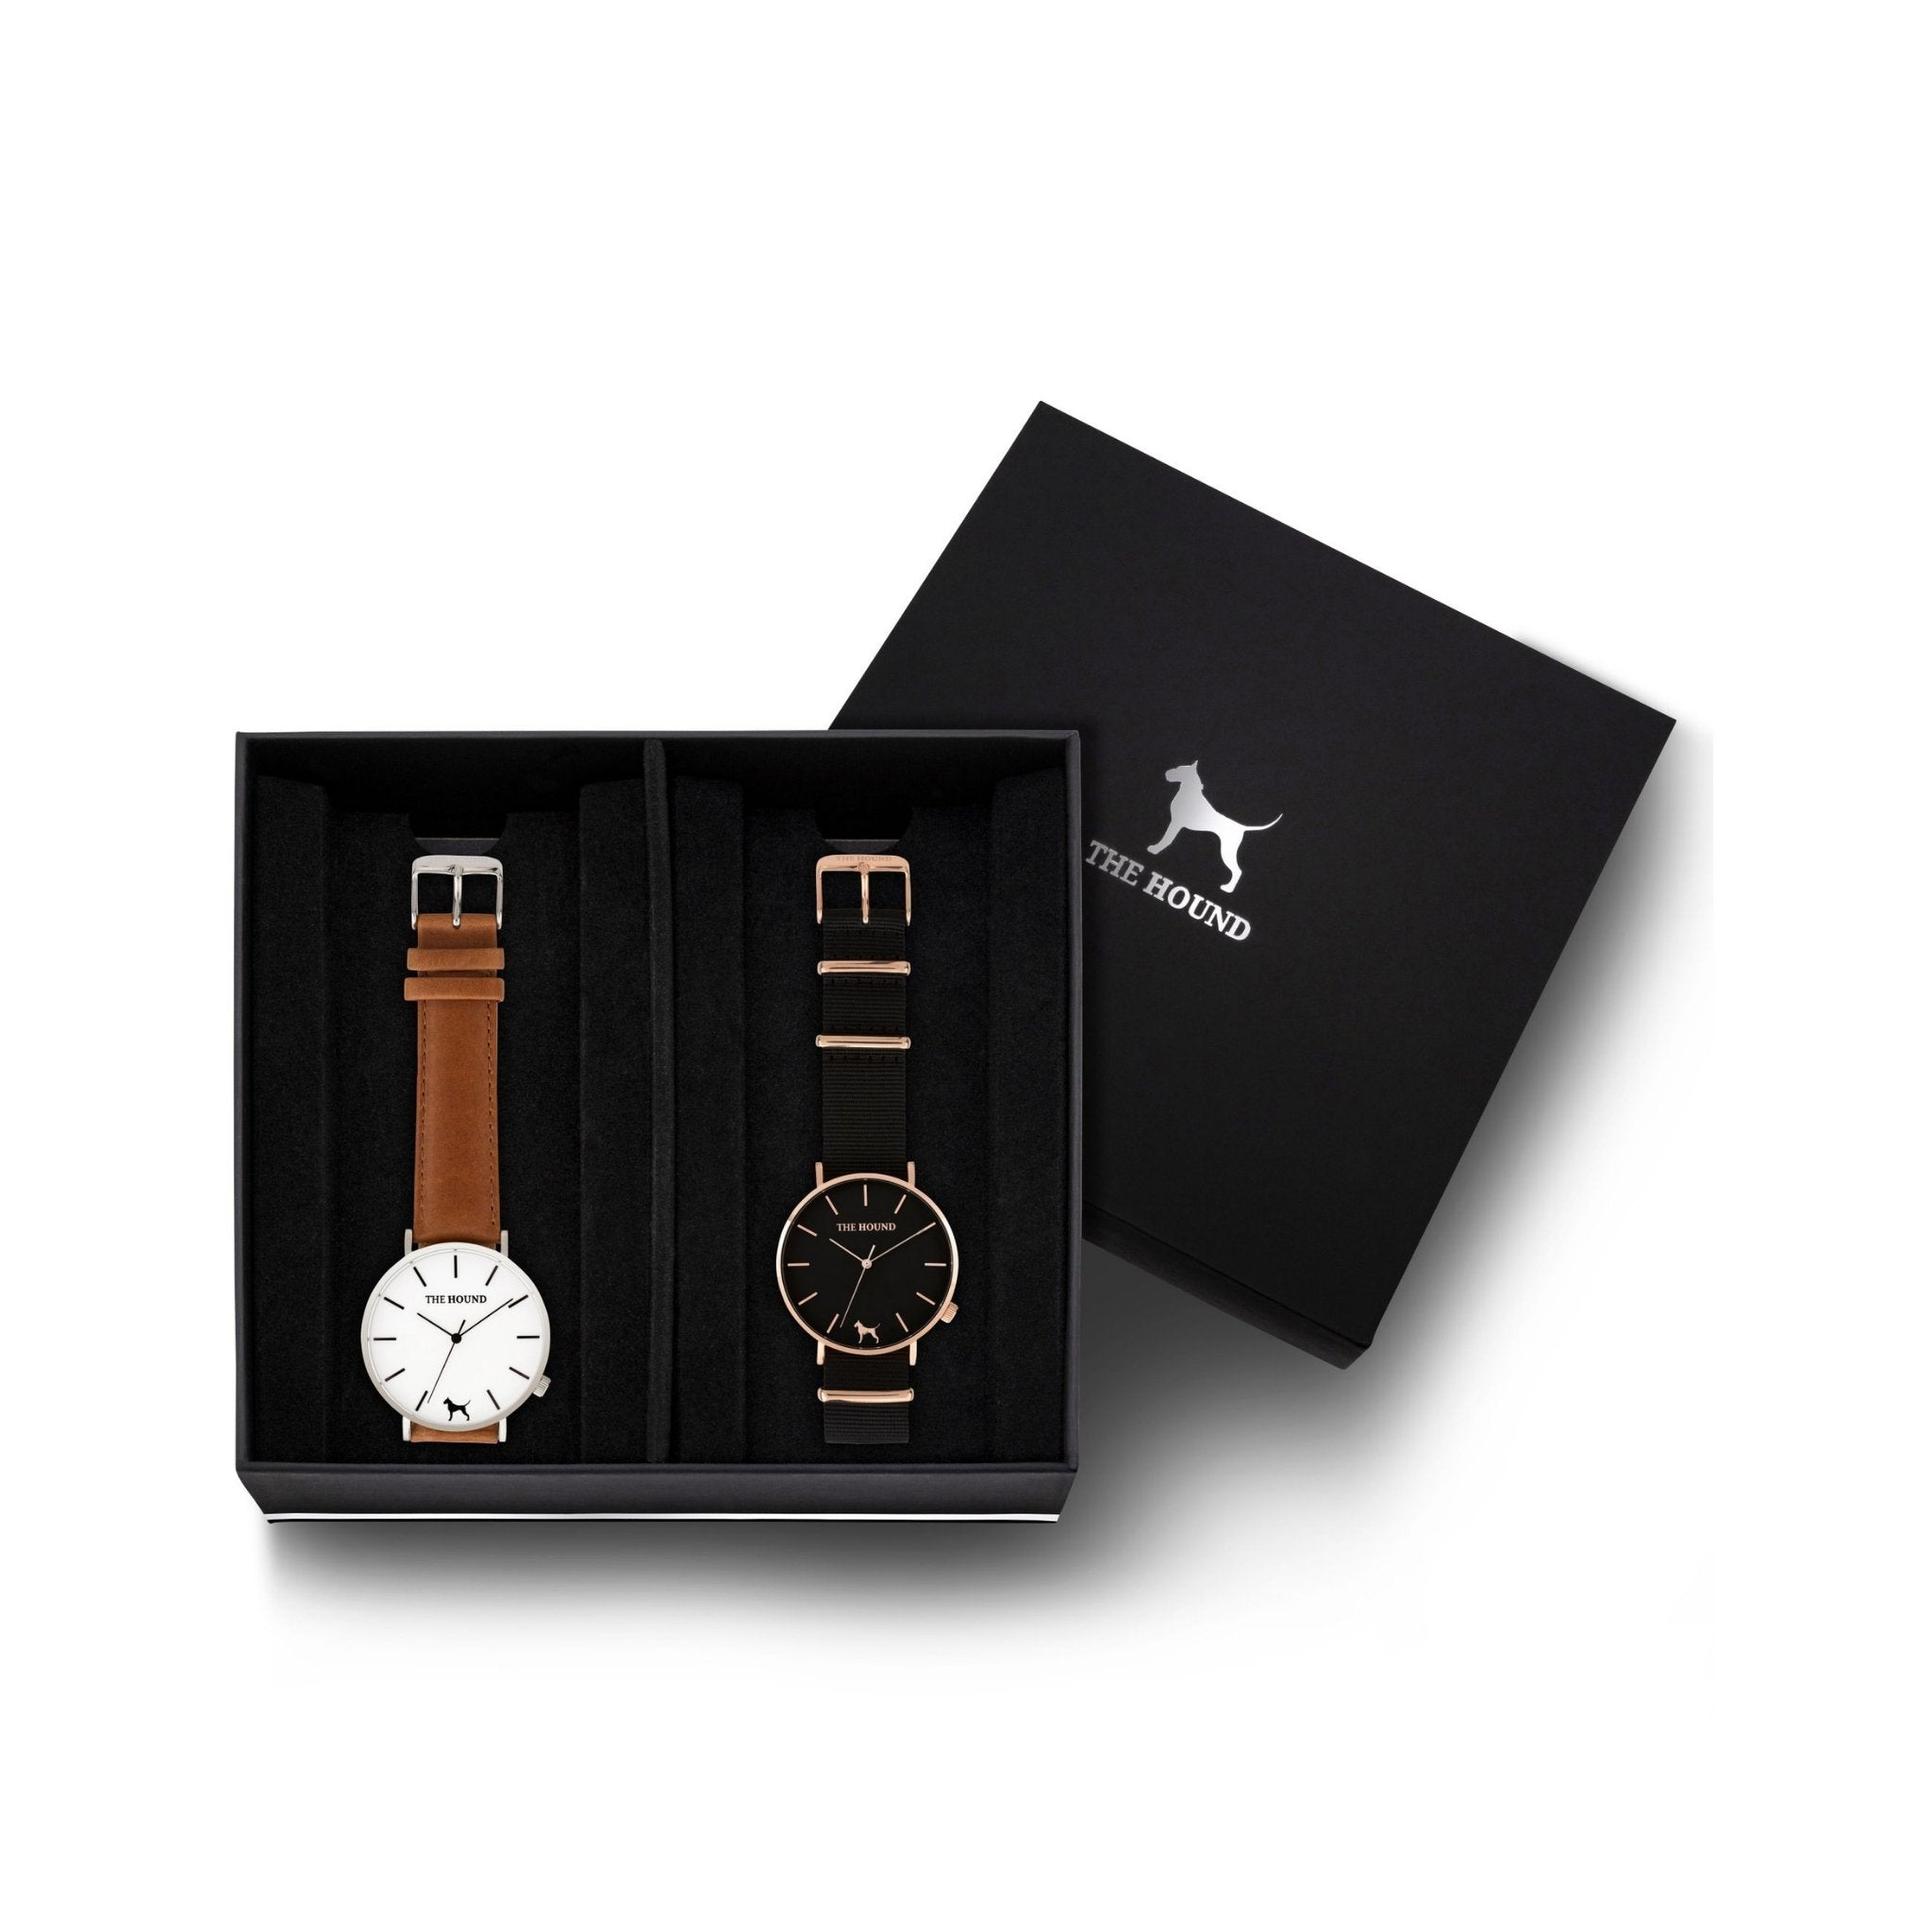 Custom gift set - Silver and white watch with stitched tan genuine leather band and a rose gold and black watch with black nato leather band